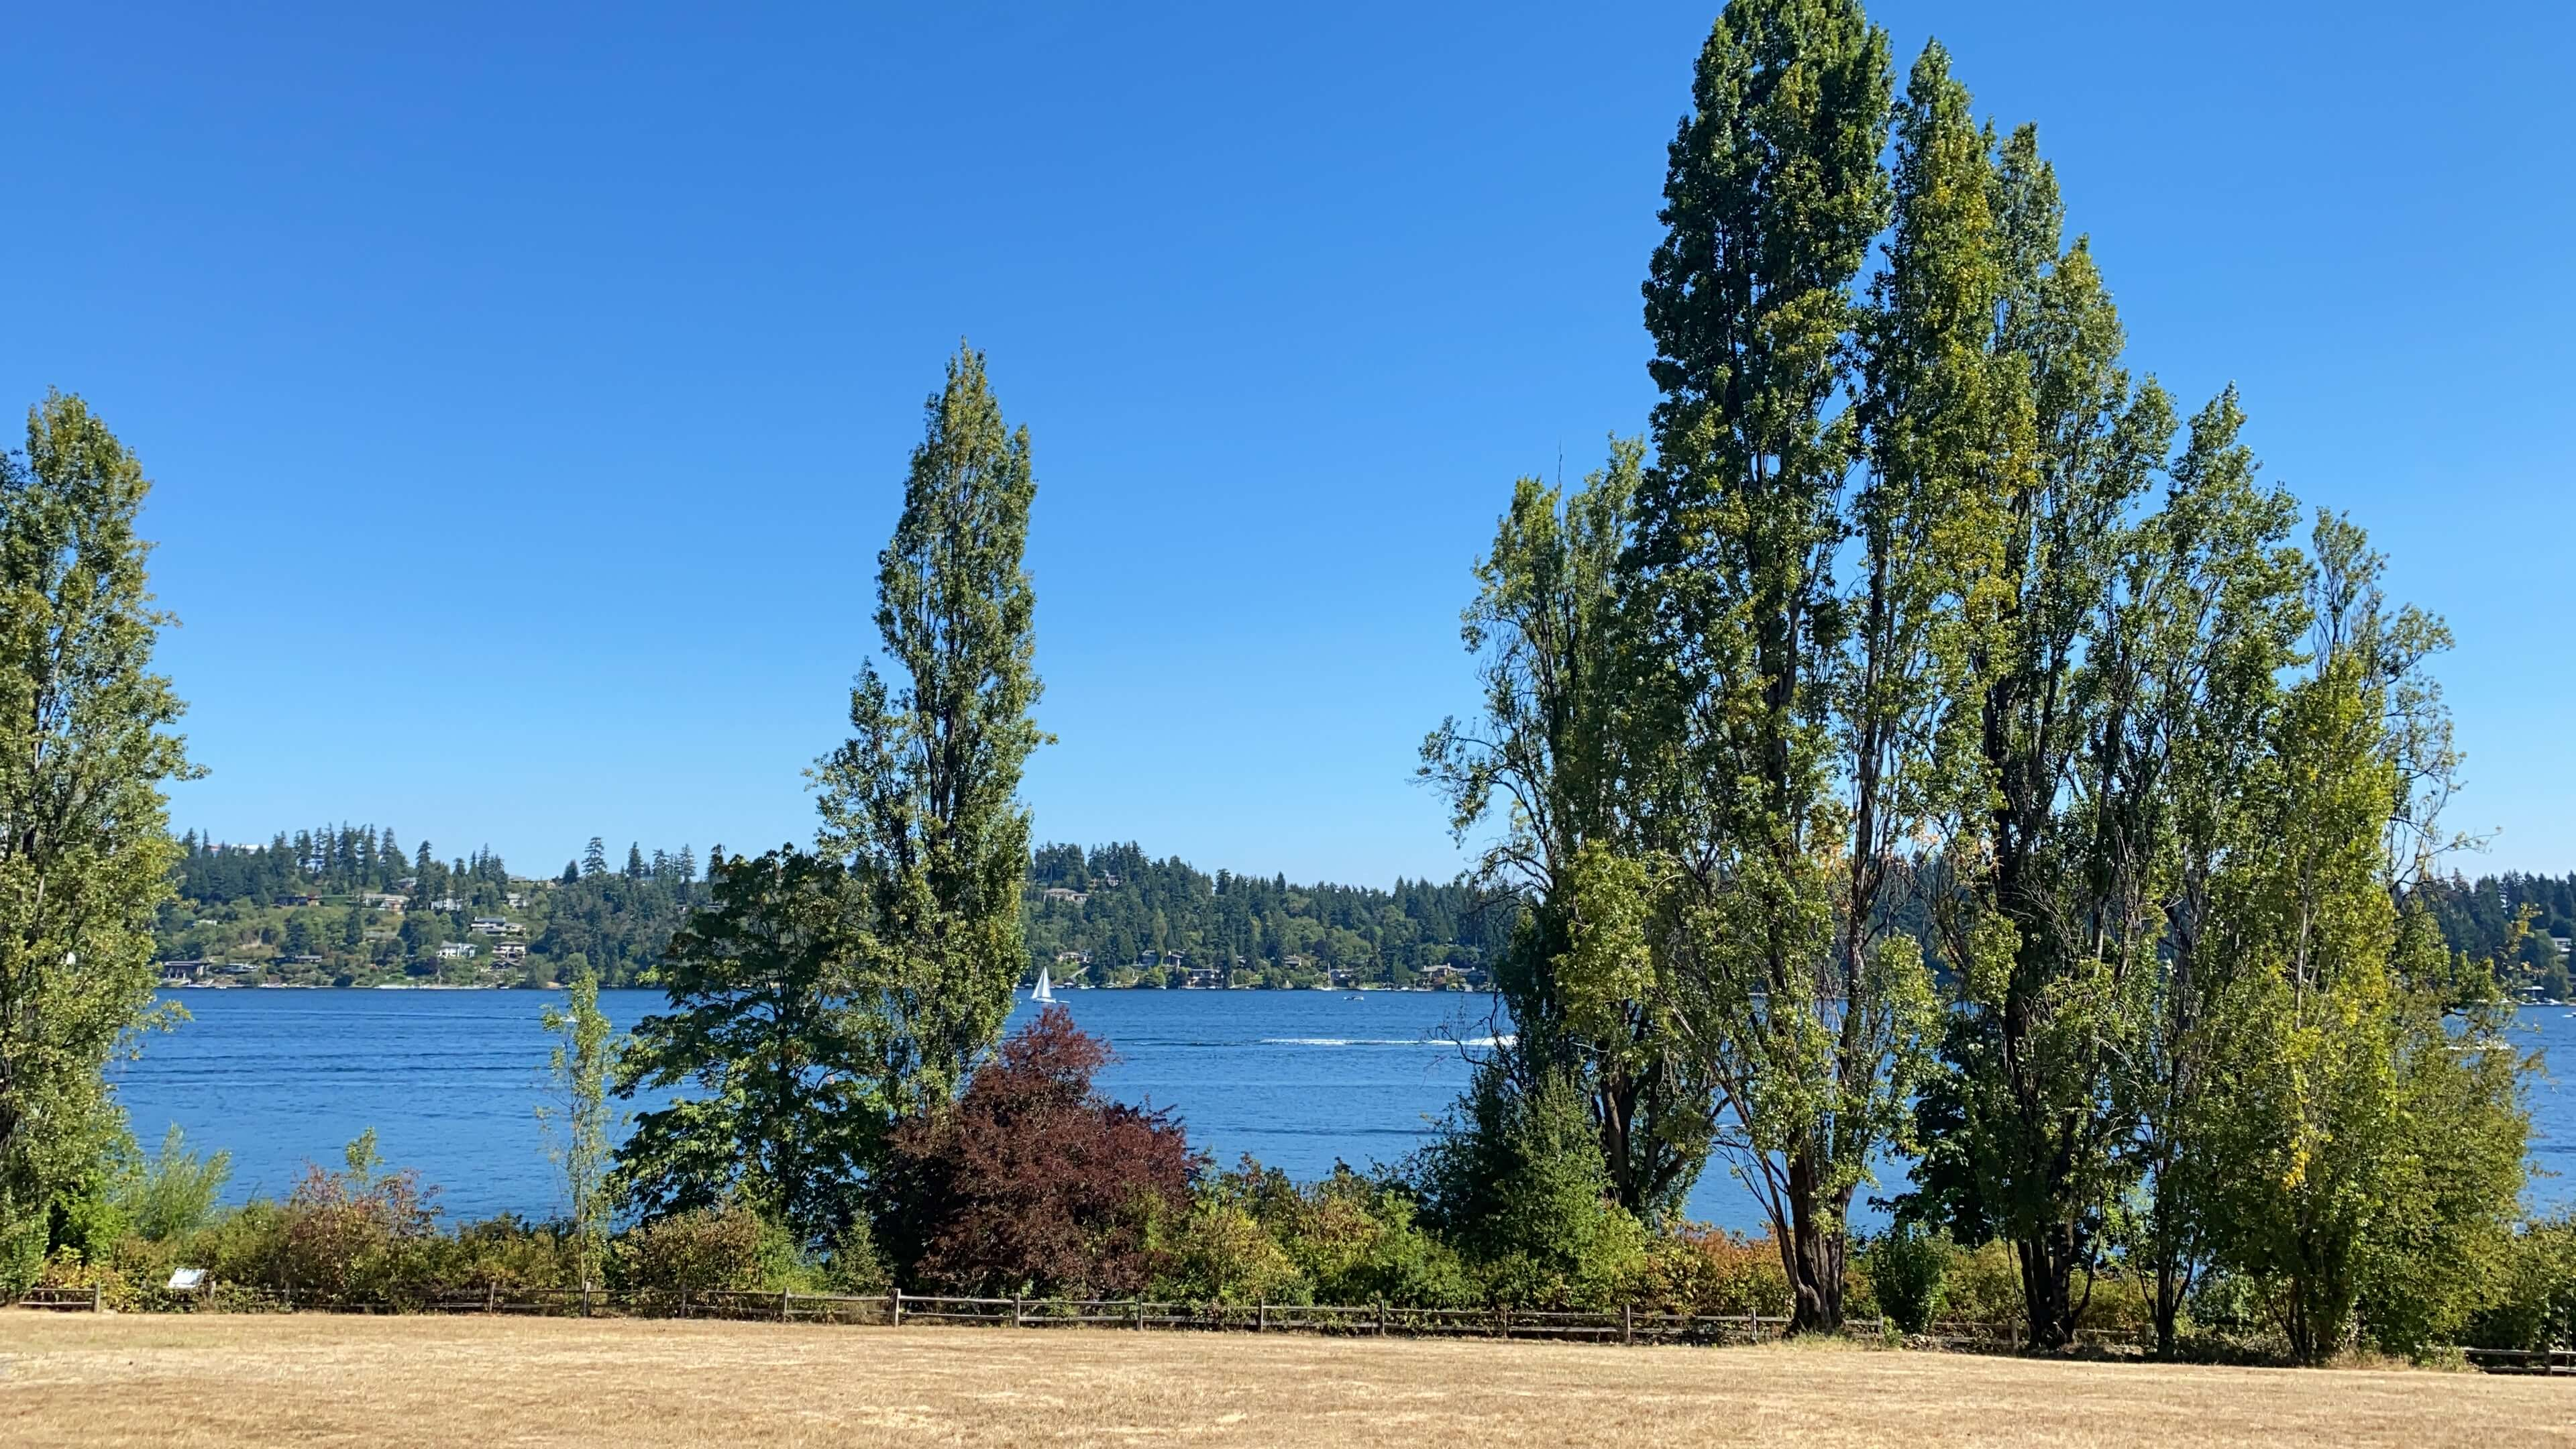 Hanging out with friends at Luther Burbank Park